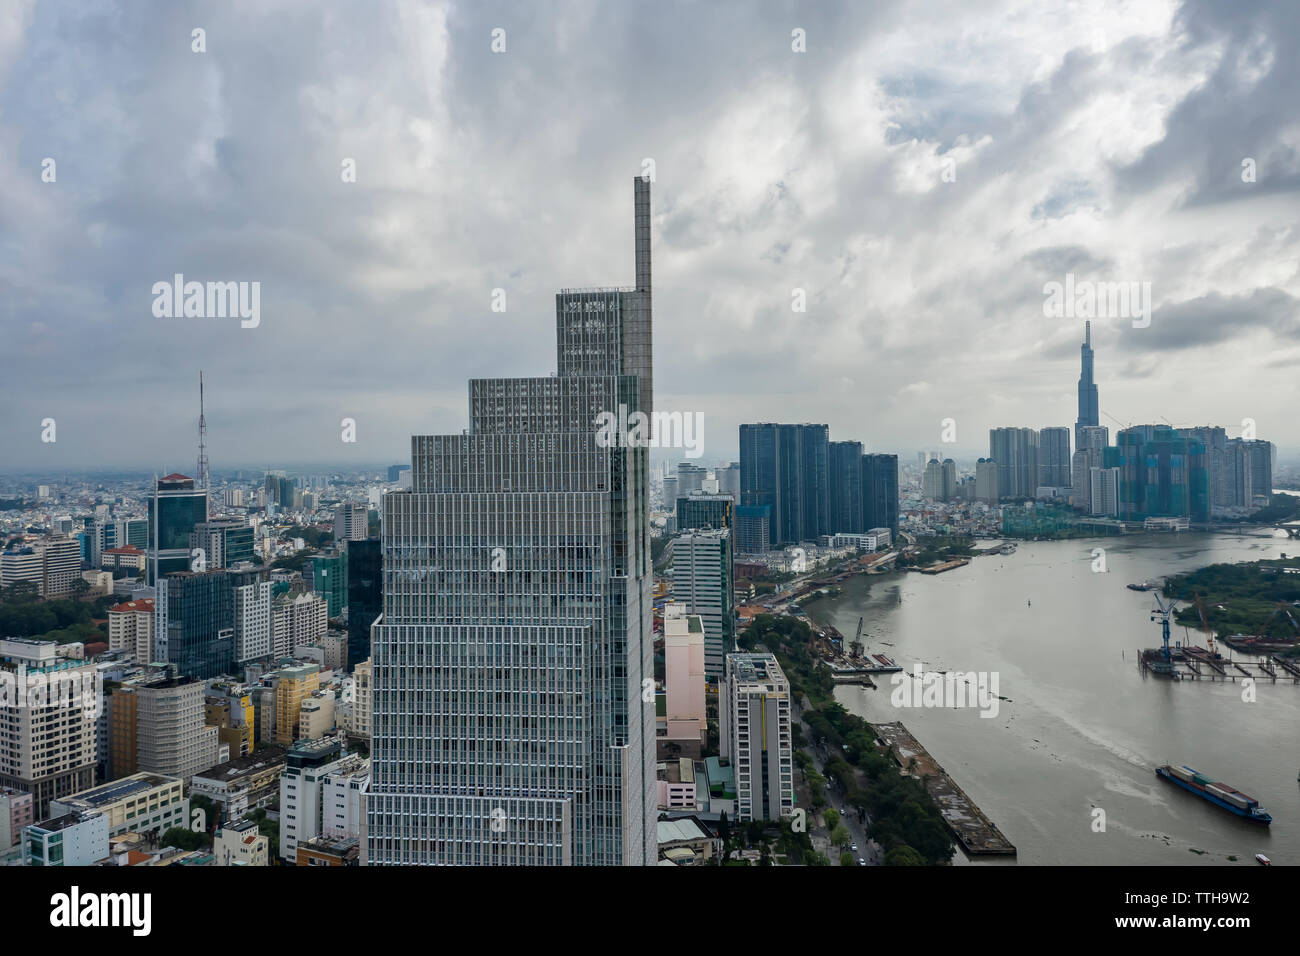 Aerial  Photos of Ho Chi Minh City Skyline (Saigon) Vietnam Morning Light - Stock Image